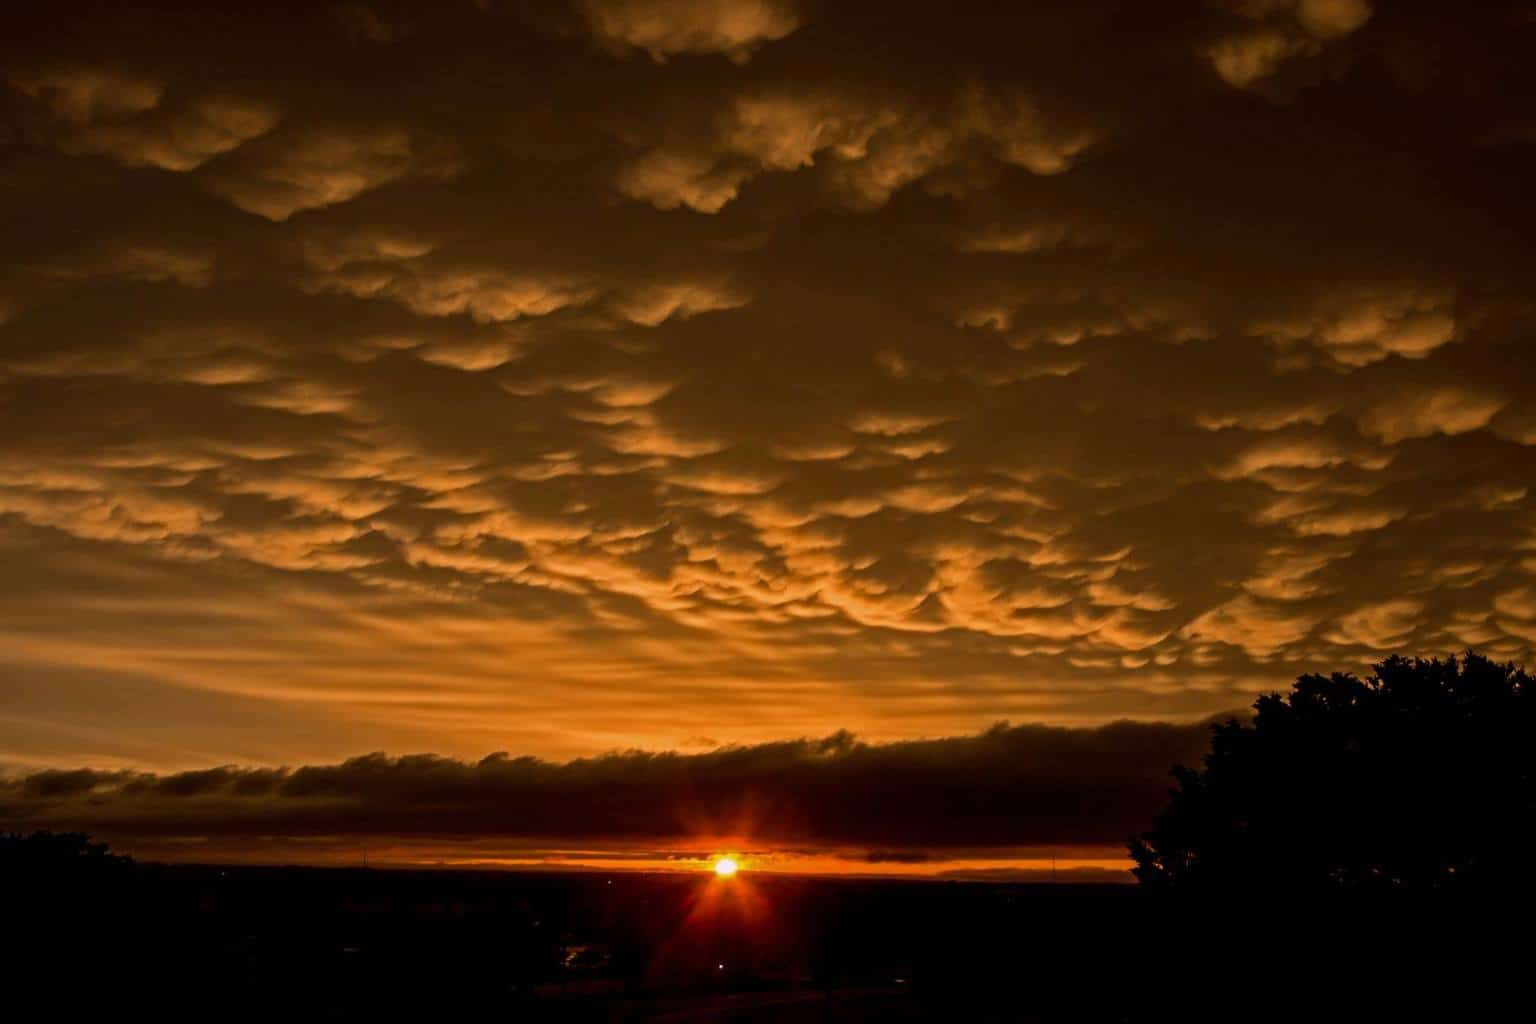 This is the sunset following the May 25, 2015 storm that I have been posting photos of the last couple of days. Taken in Temple, Texas.